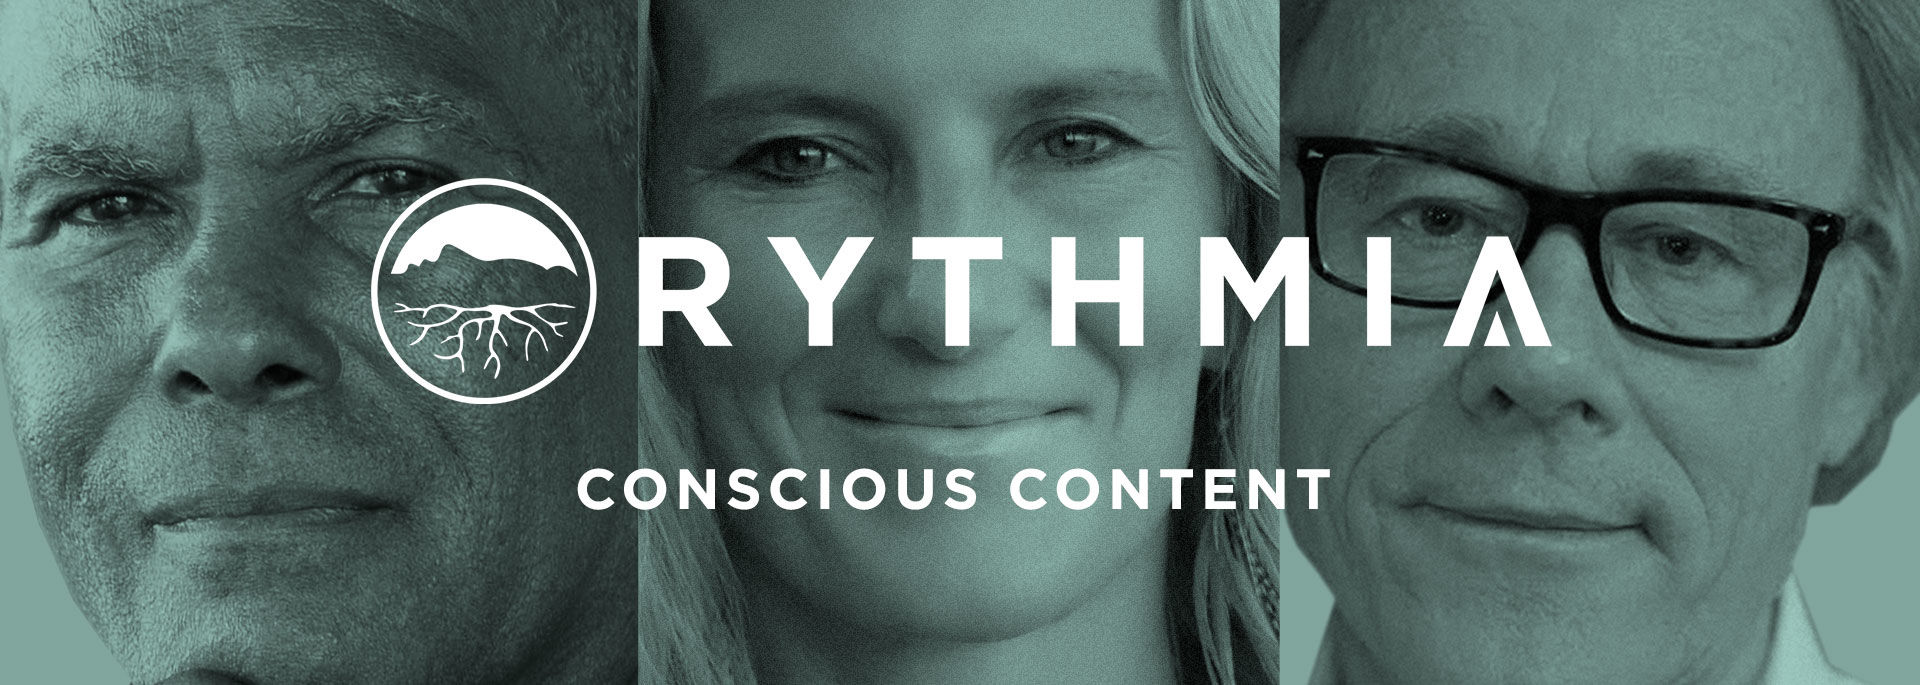 #Rythmia Conscious Content channel